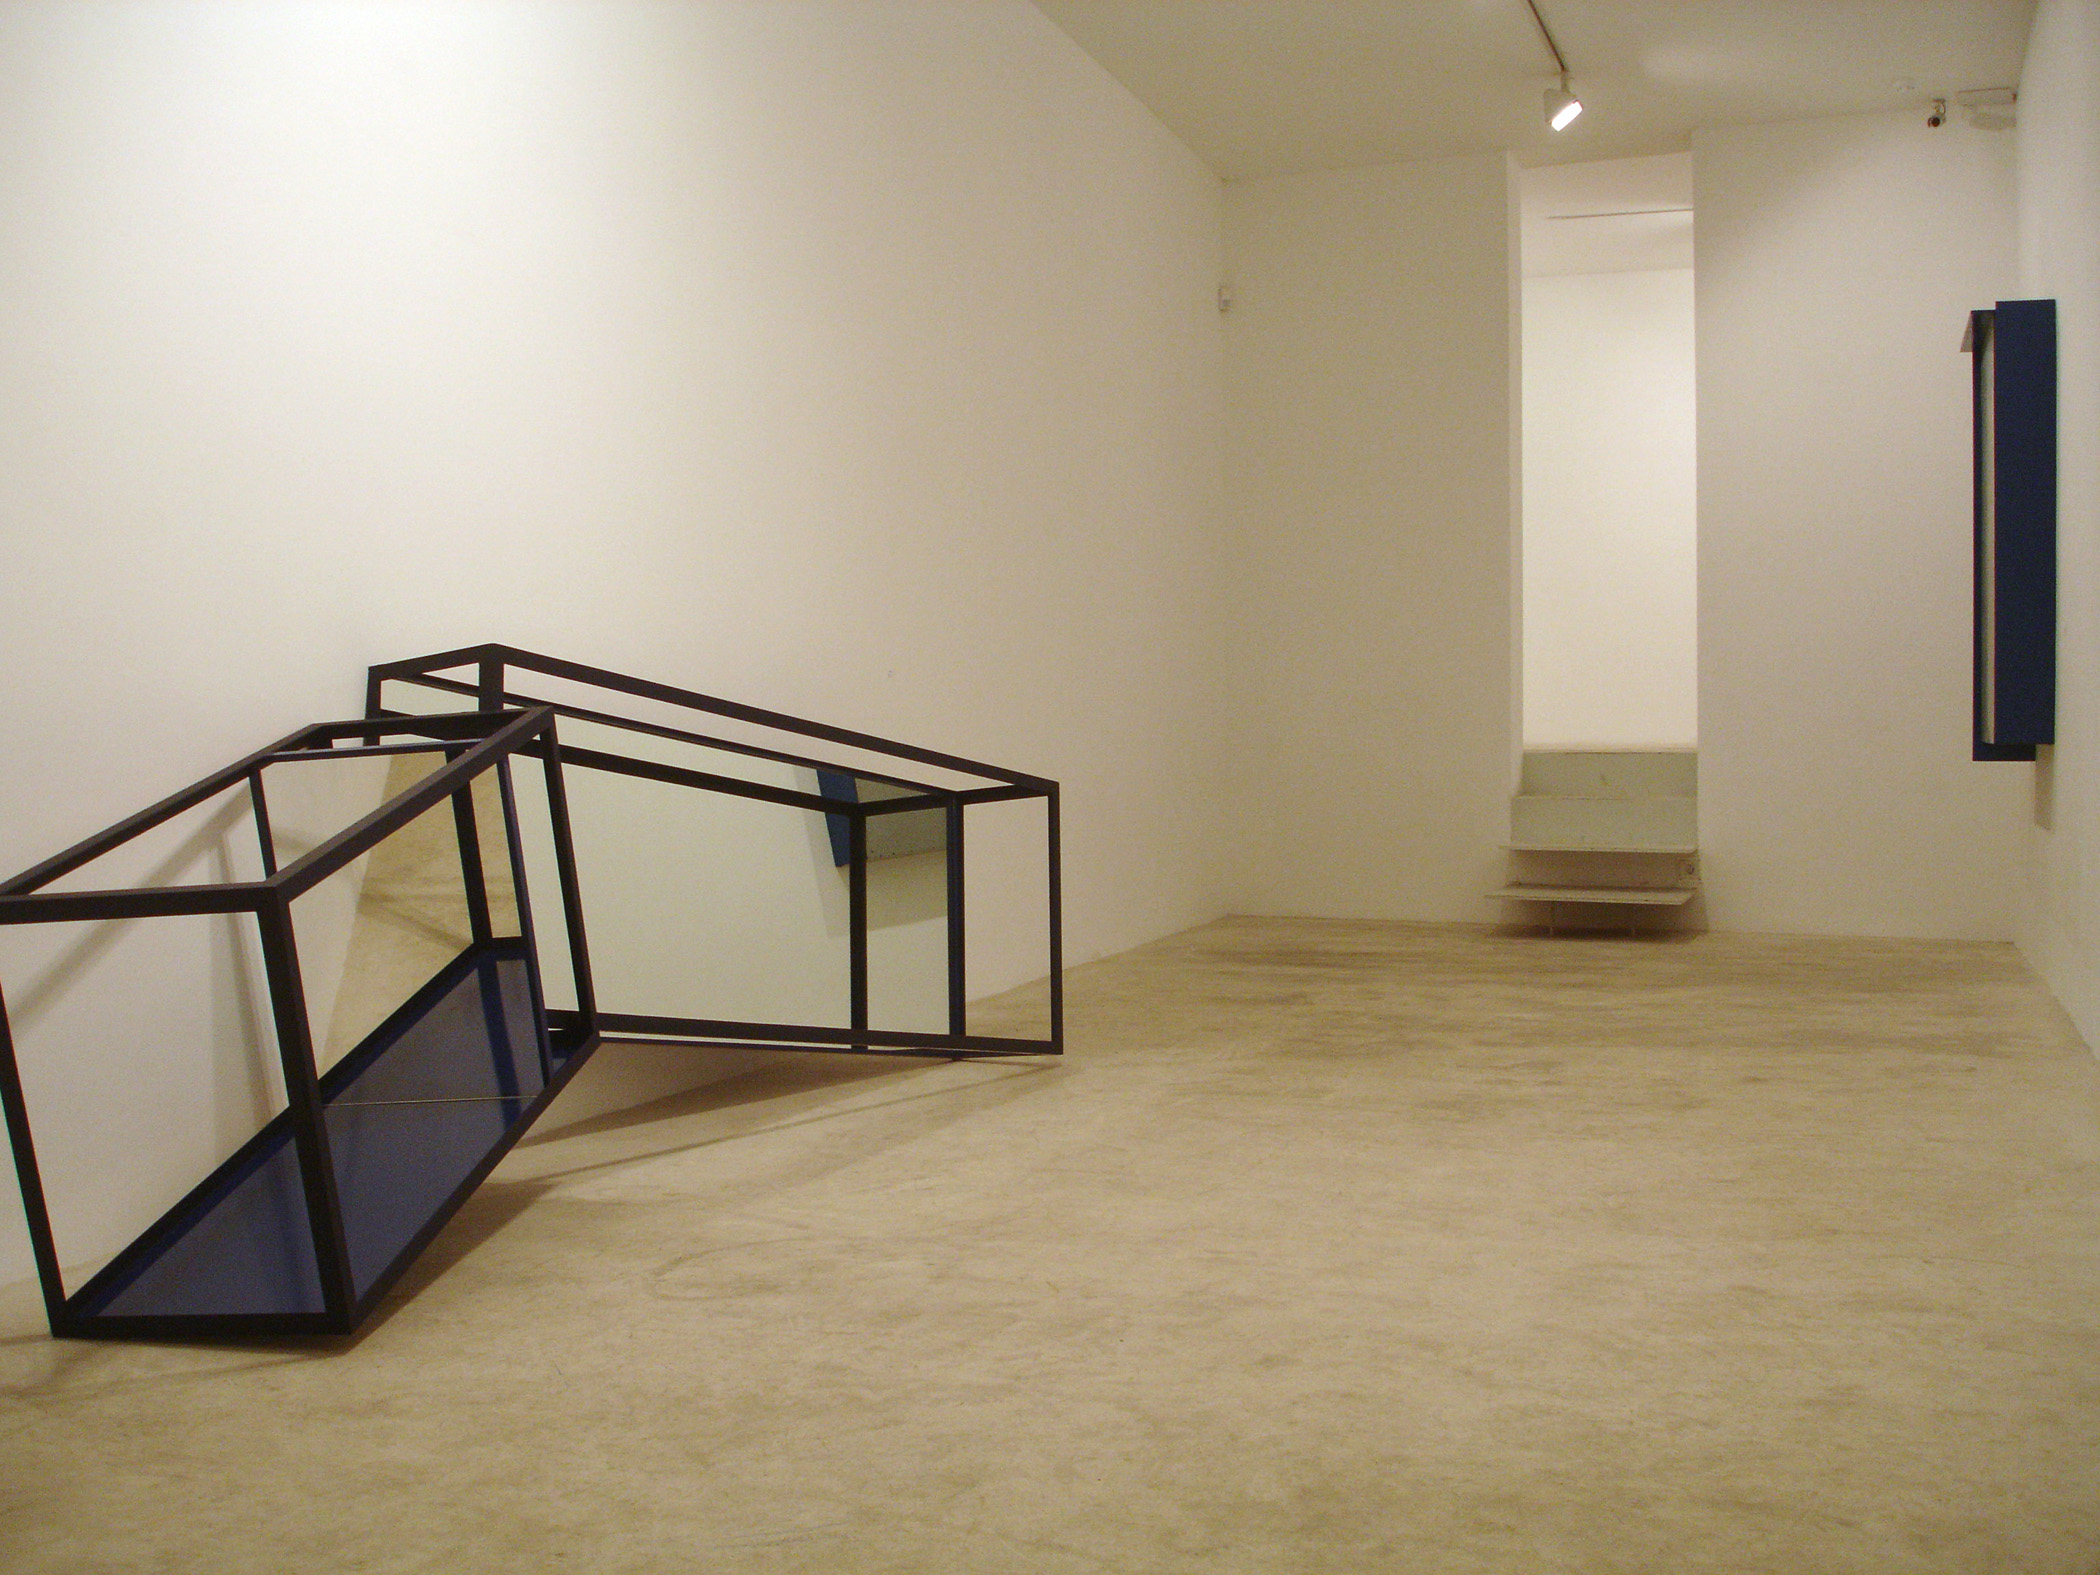 Exhibition view from Jose Pedro Croft, 2005